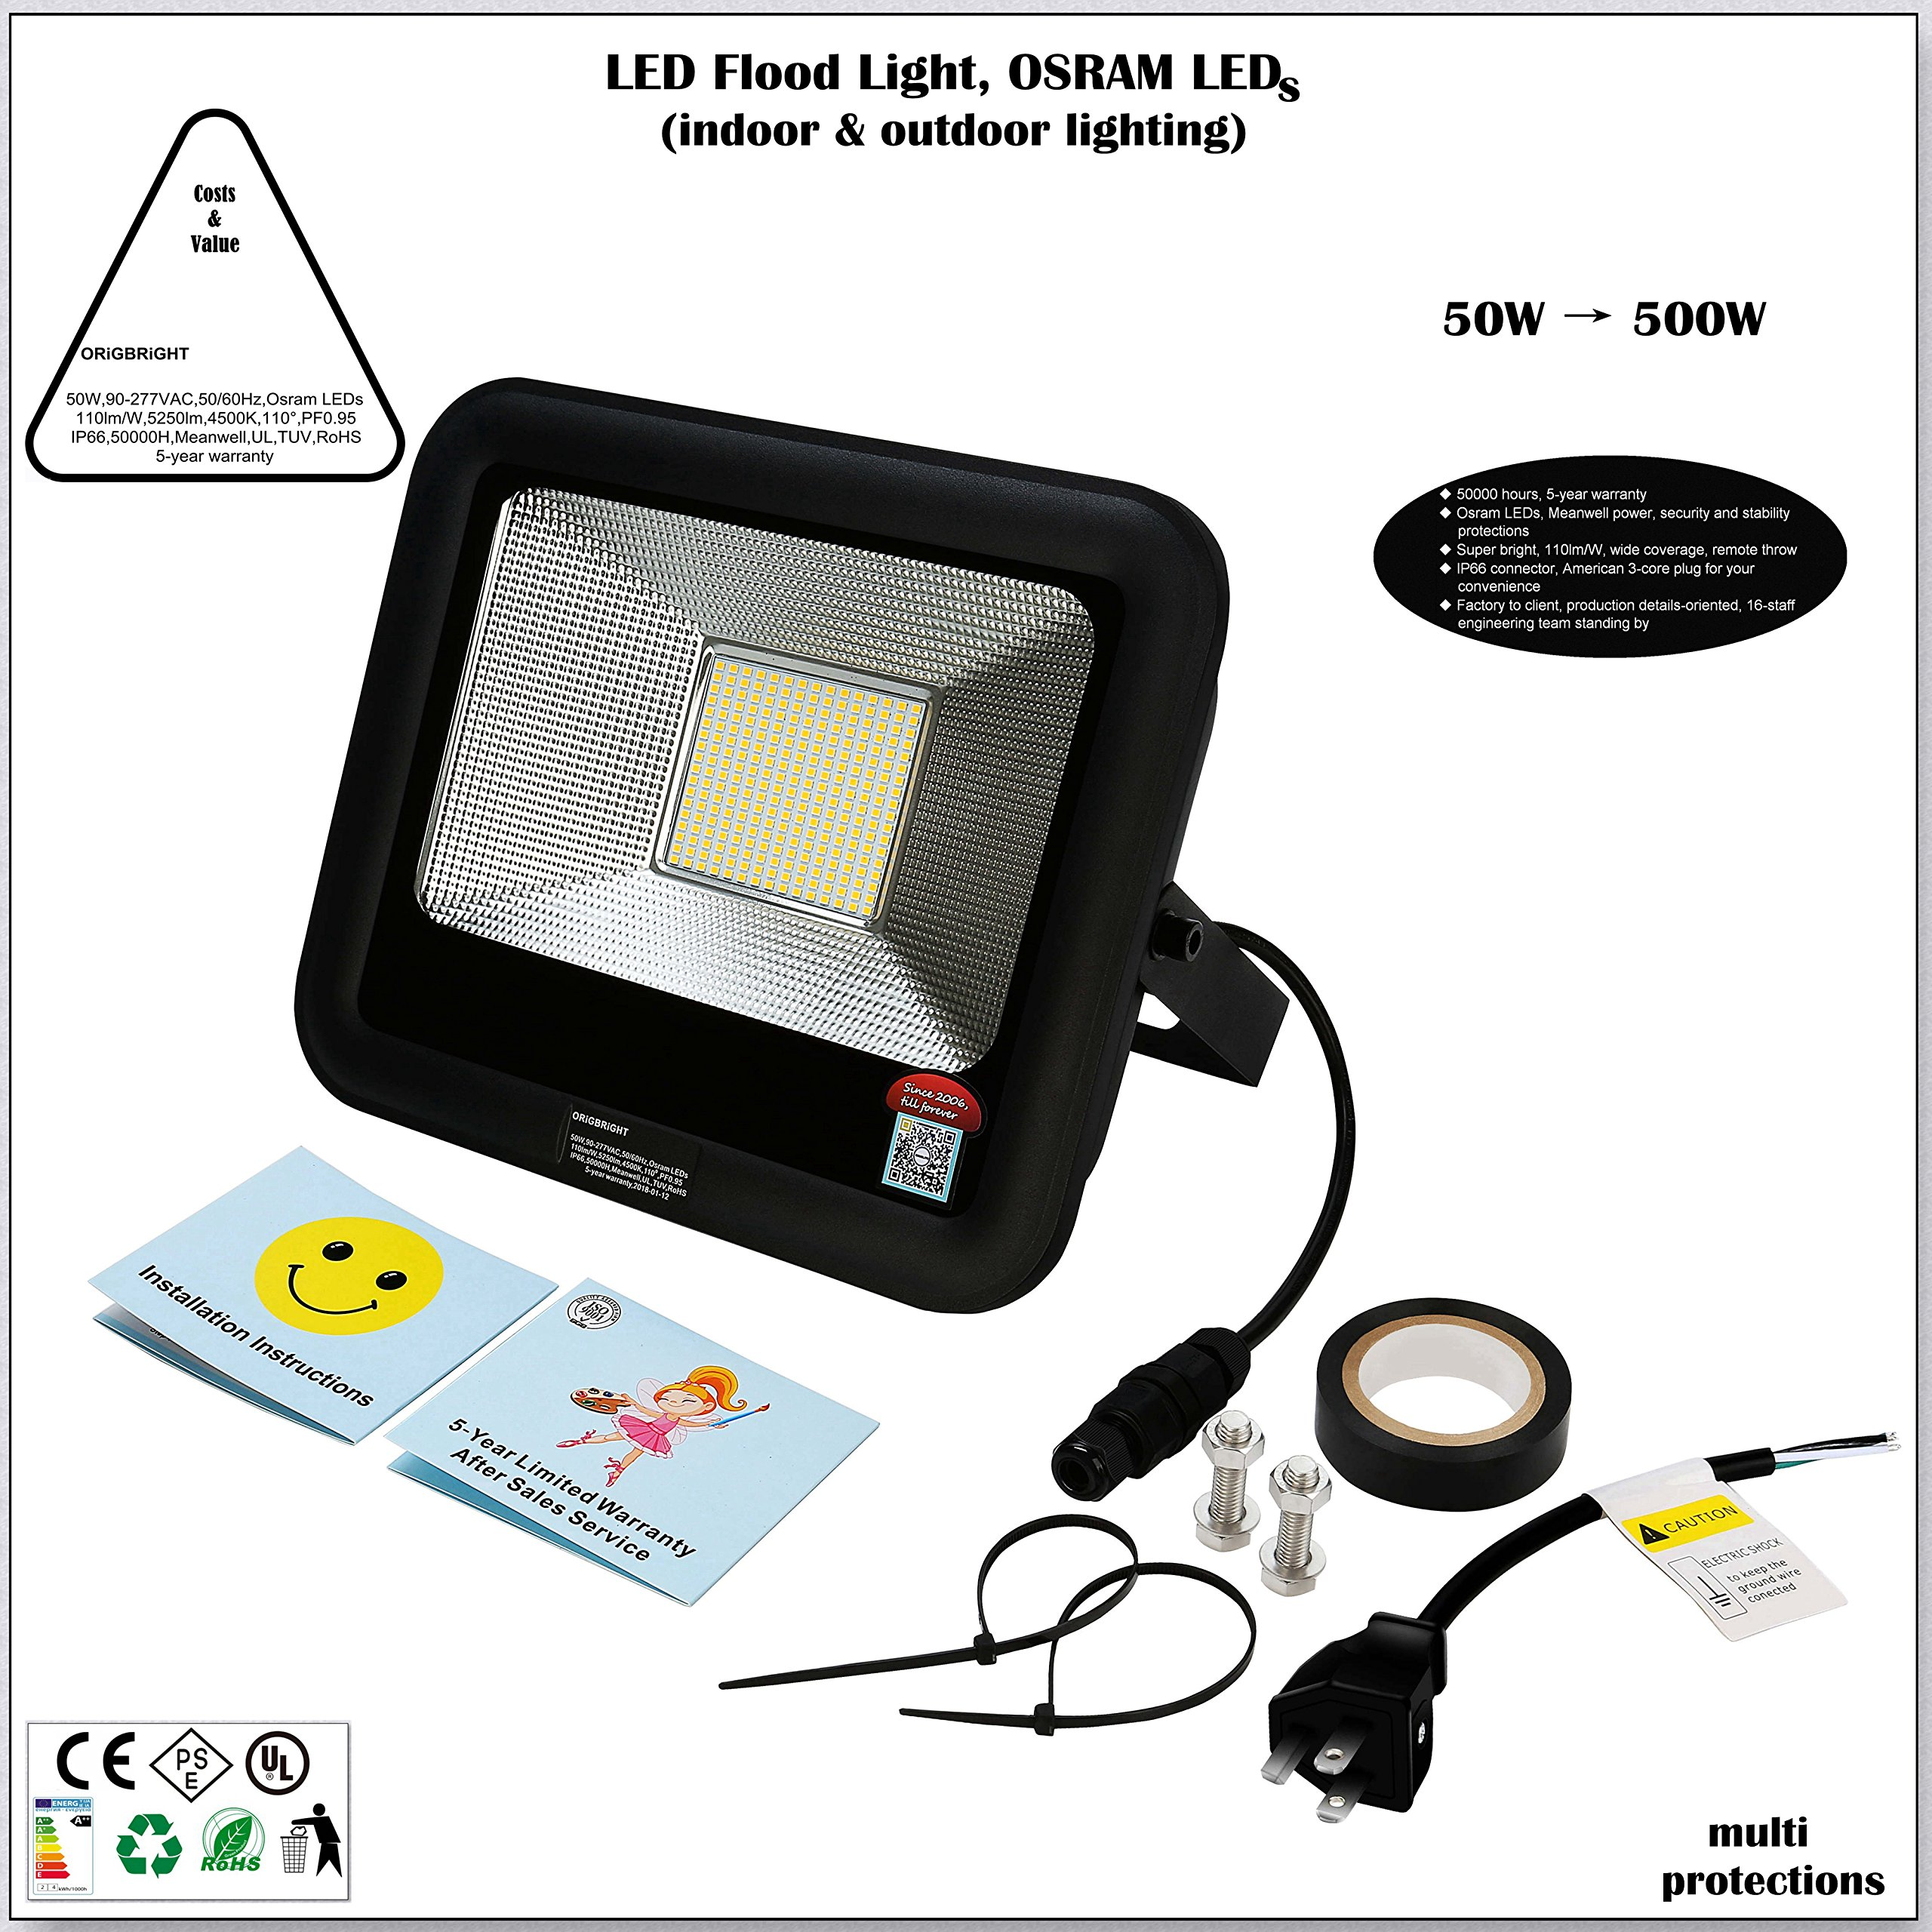 ORiGBRiGHT 50W LED Flood Light, Work Light, Osram LED, 115lm/W 5636lm, 4500K, Meanwell Power, IP66, UL, 5-Year Warranty, Stability Security Protections, US Plug, Indoor, Outdoor, Tennis Court, Facade